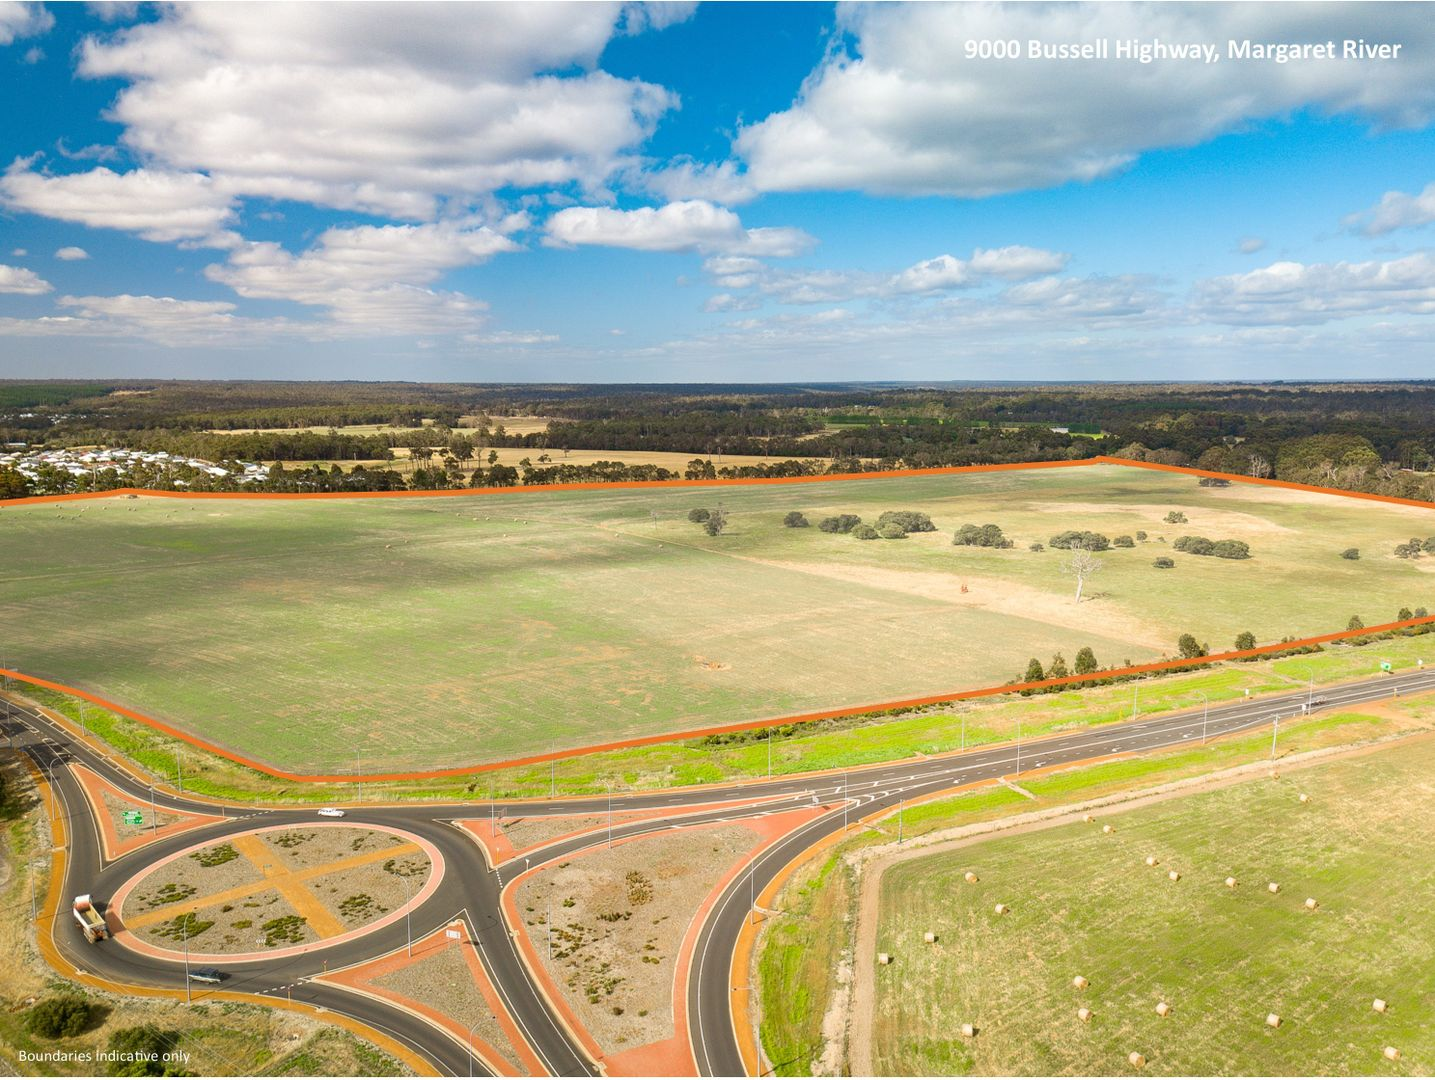 Lot 9000 Bussell Highway, Margaret River WA 6285, Image 1